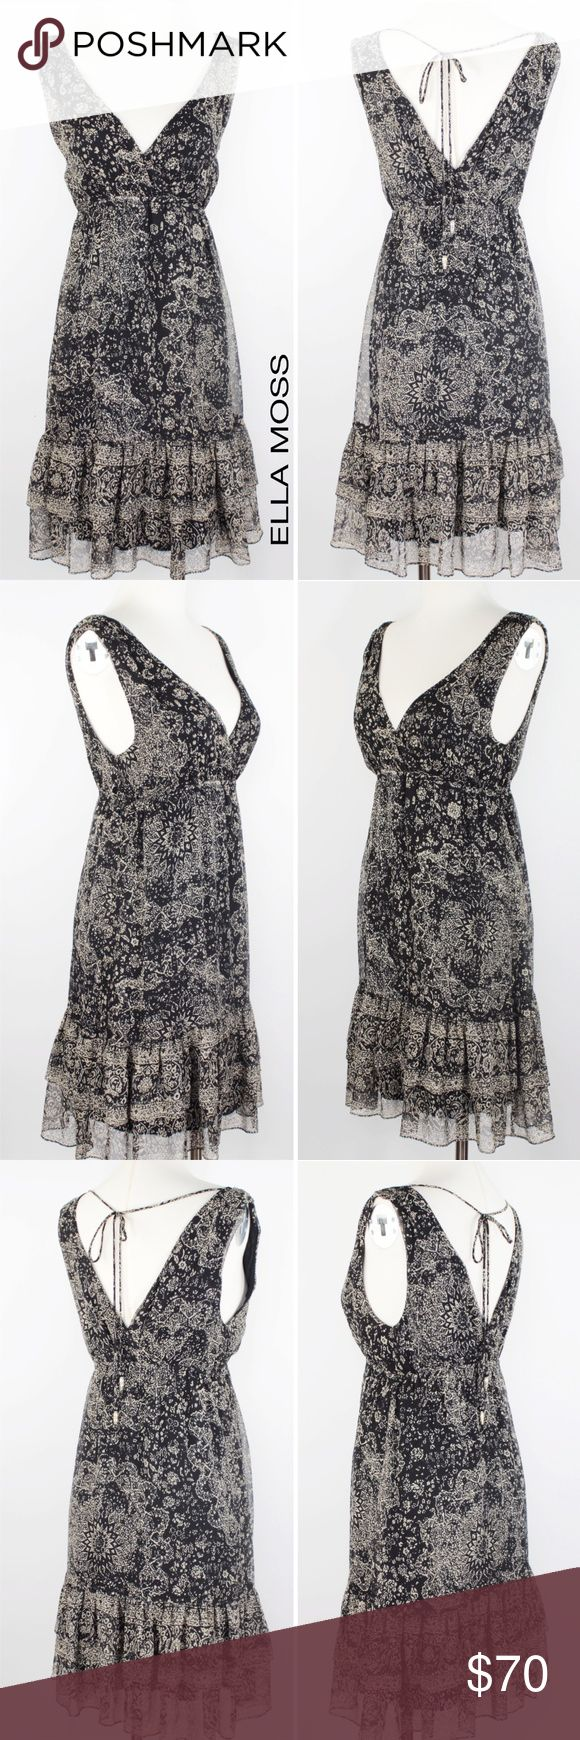 """Ella Moss NWOT 